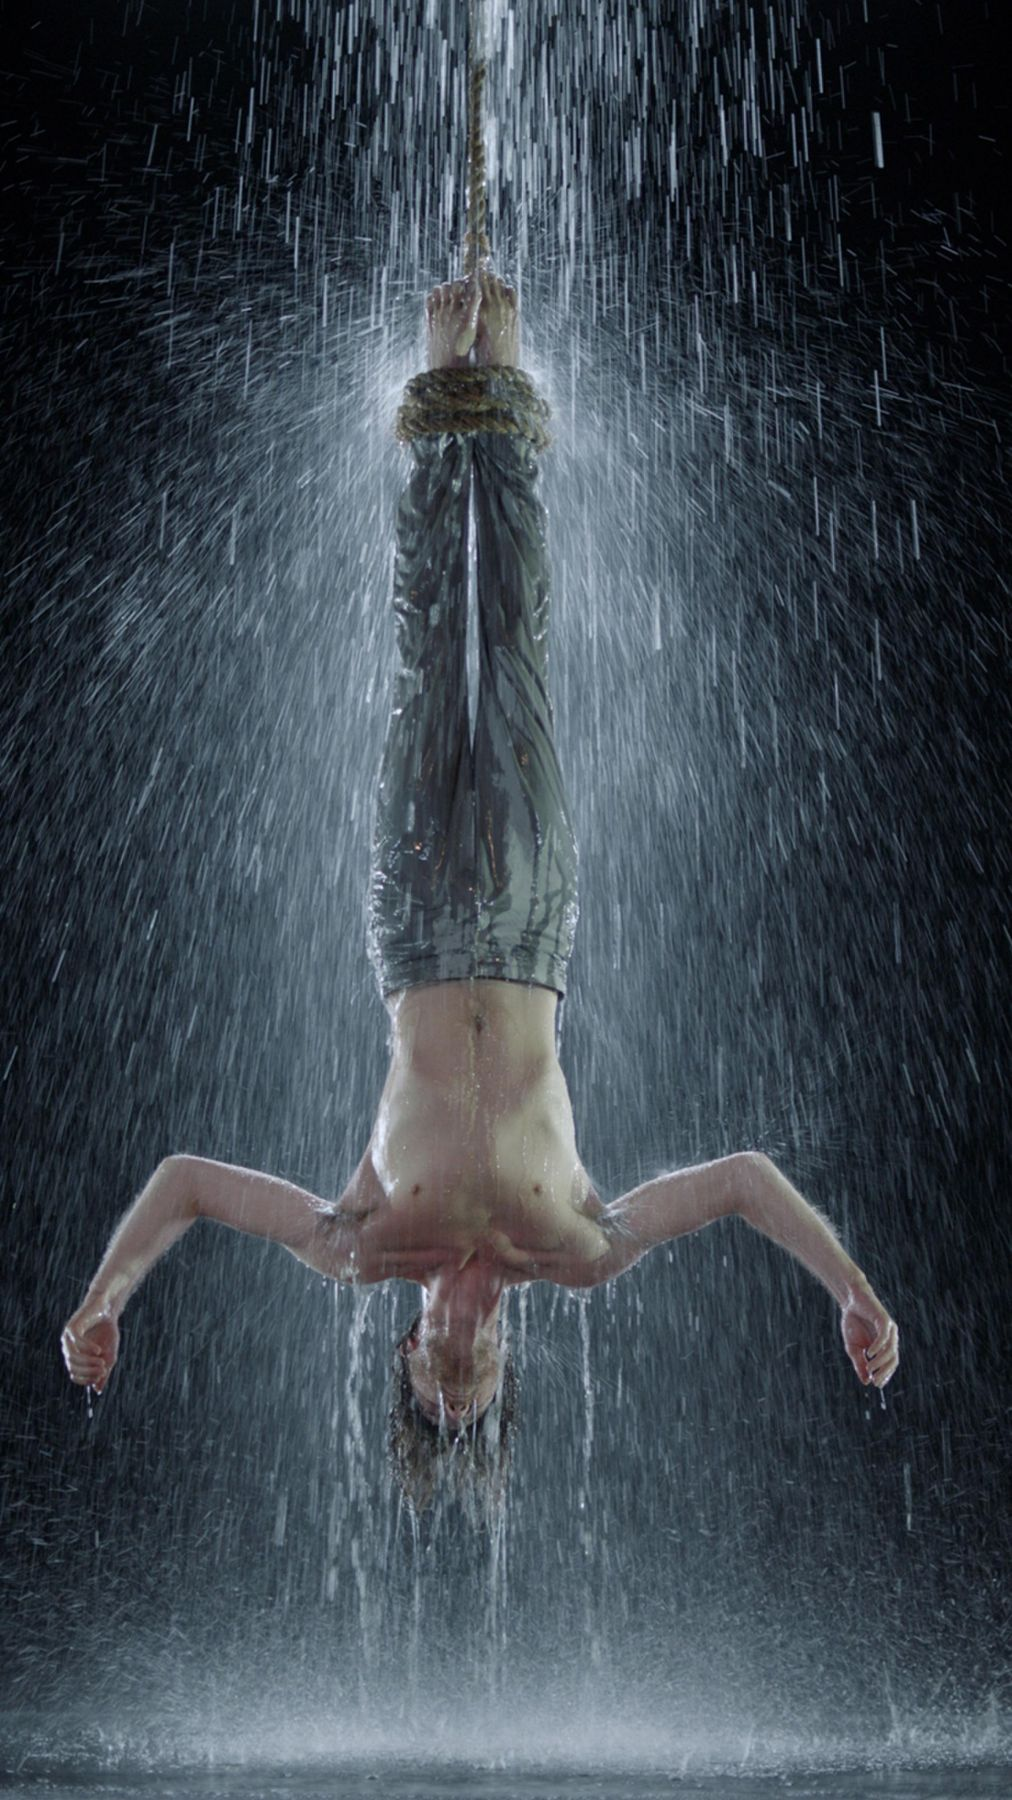 """, BILL VIOLA (æ¯""""å°"""" 维奥拉),Water Martyr,2014, color high-definition video on plasma display mounted vertically on wall, 42 3/8 x 24 1/2 x 2 5/8 in. 7:10 minutes. Executive producer: Kira Perov,"""